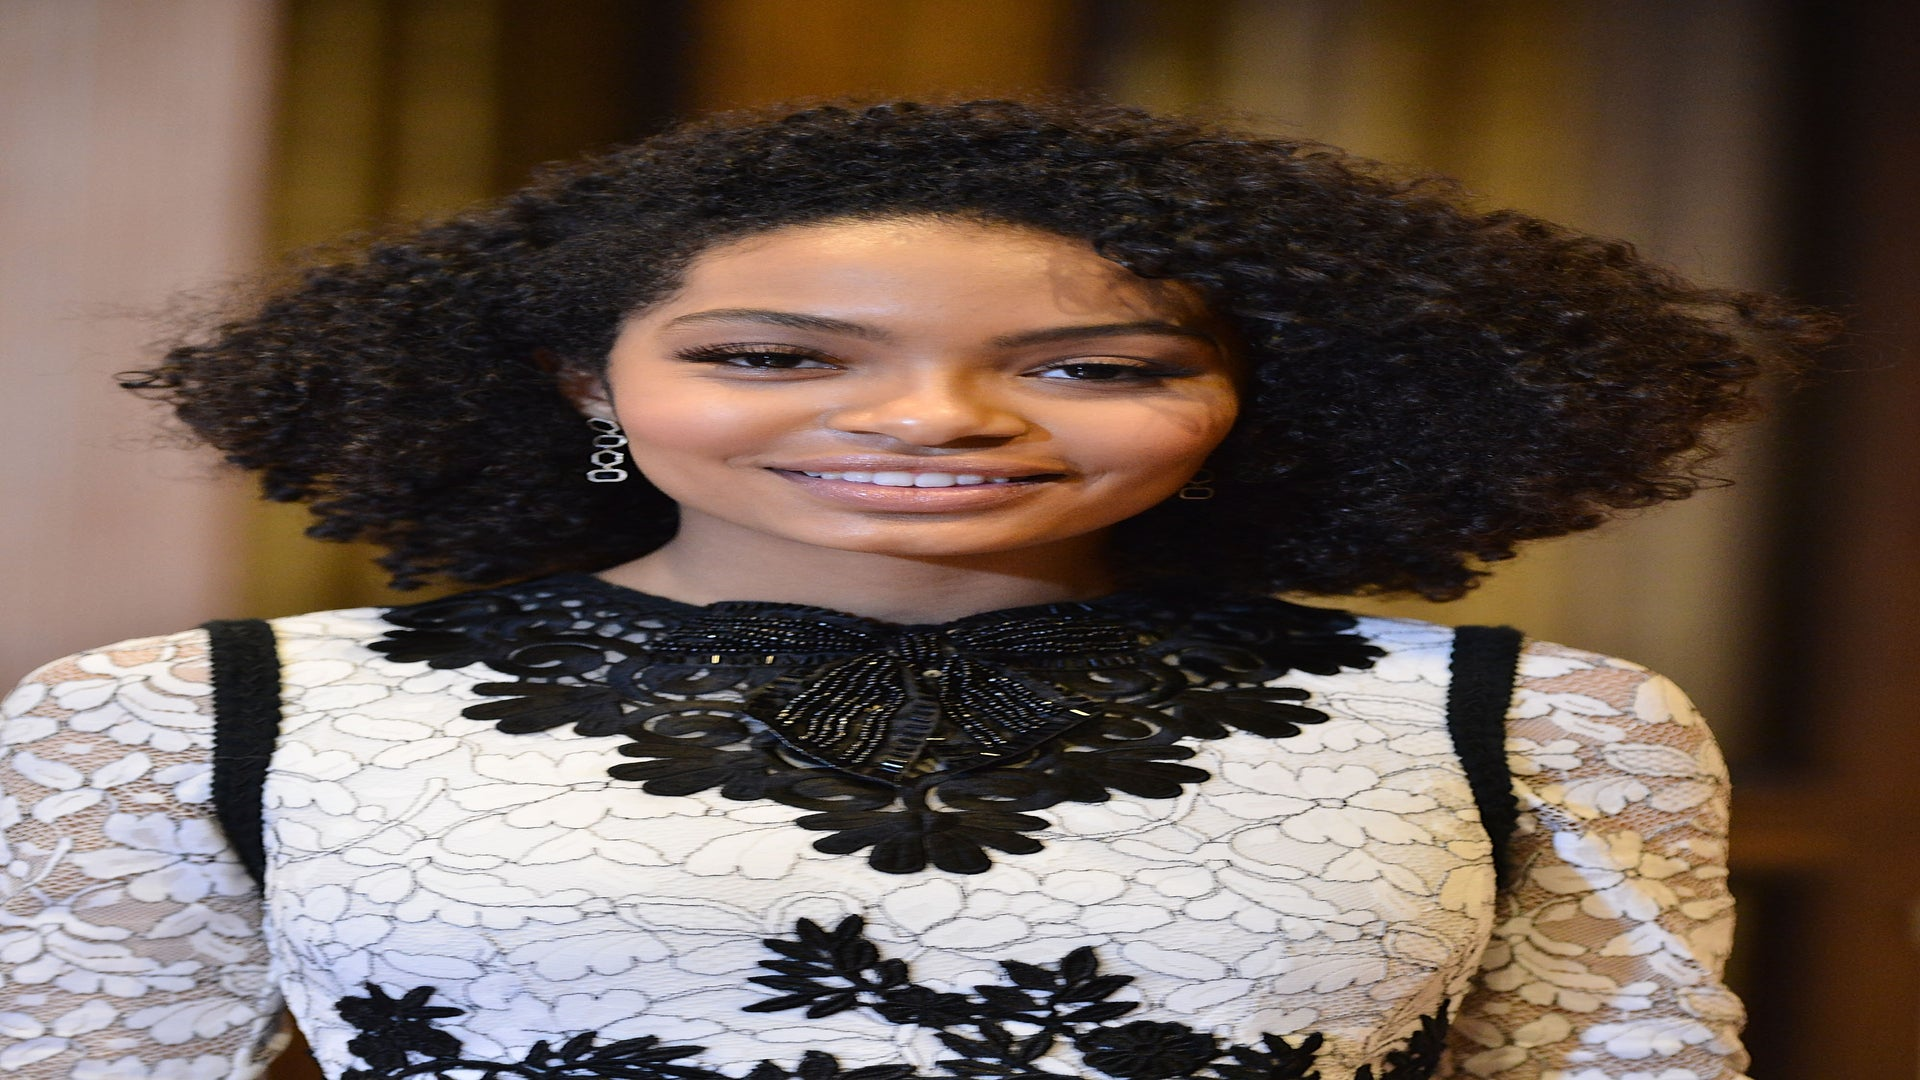 This 'Black-ish' Character Is Getting Her Own Spin-Off Show